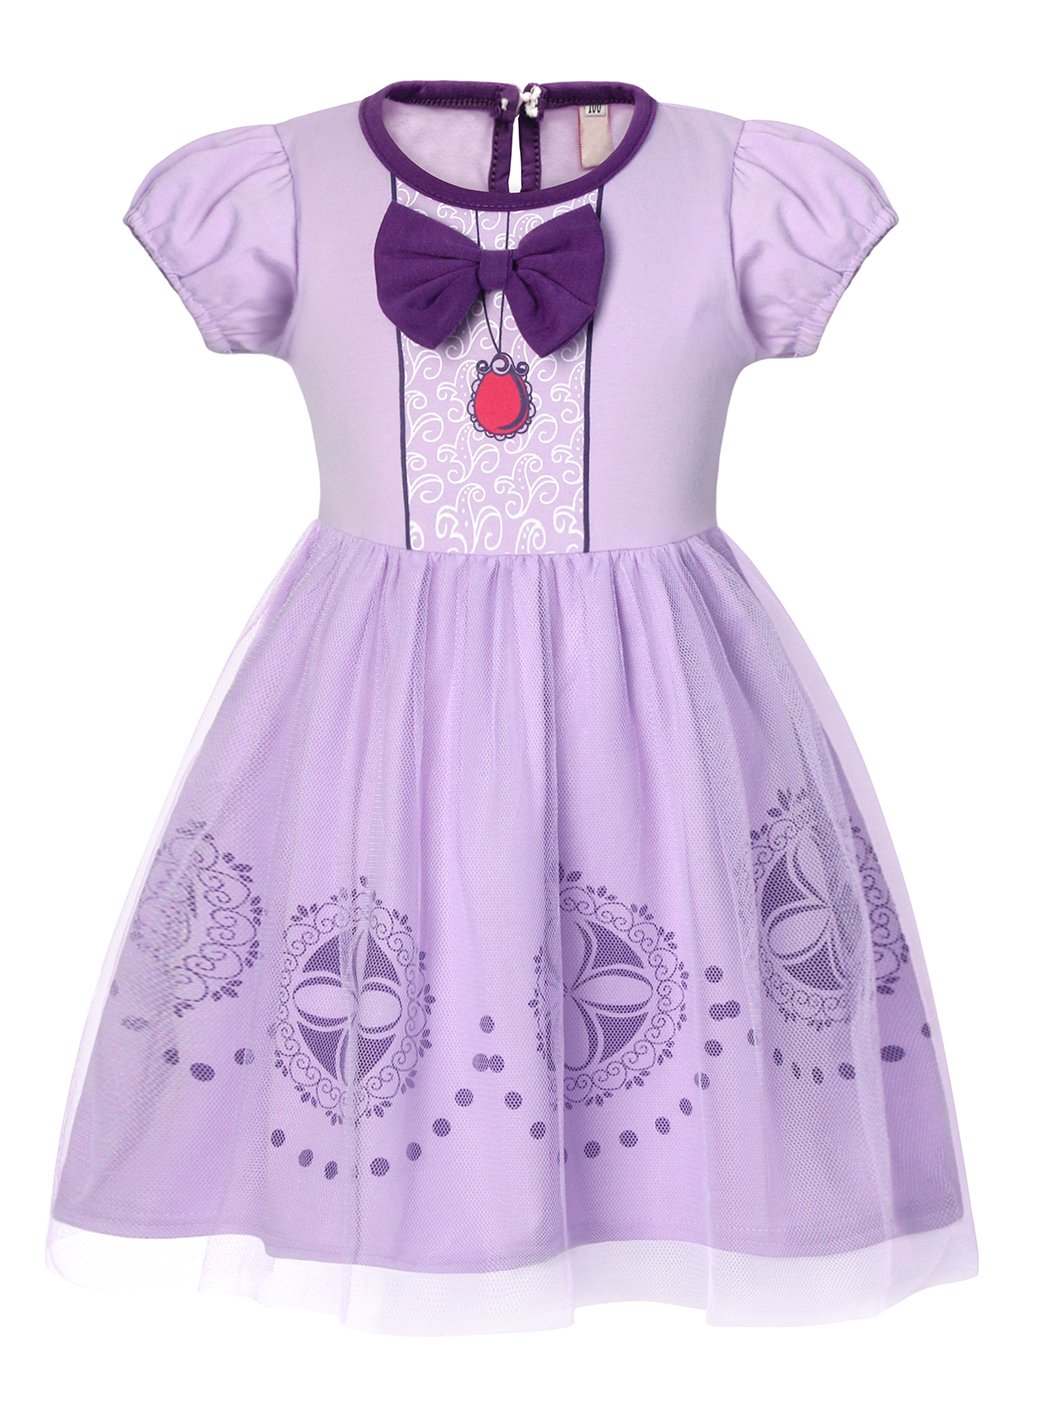 HenzWorld Sofia Dress for Toddler Girls, Short Sleeve Cotton Casual Dress Outfit for Little Girl 2T(90 1-2Years)